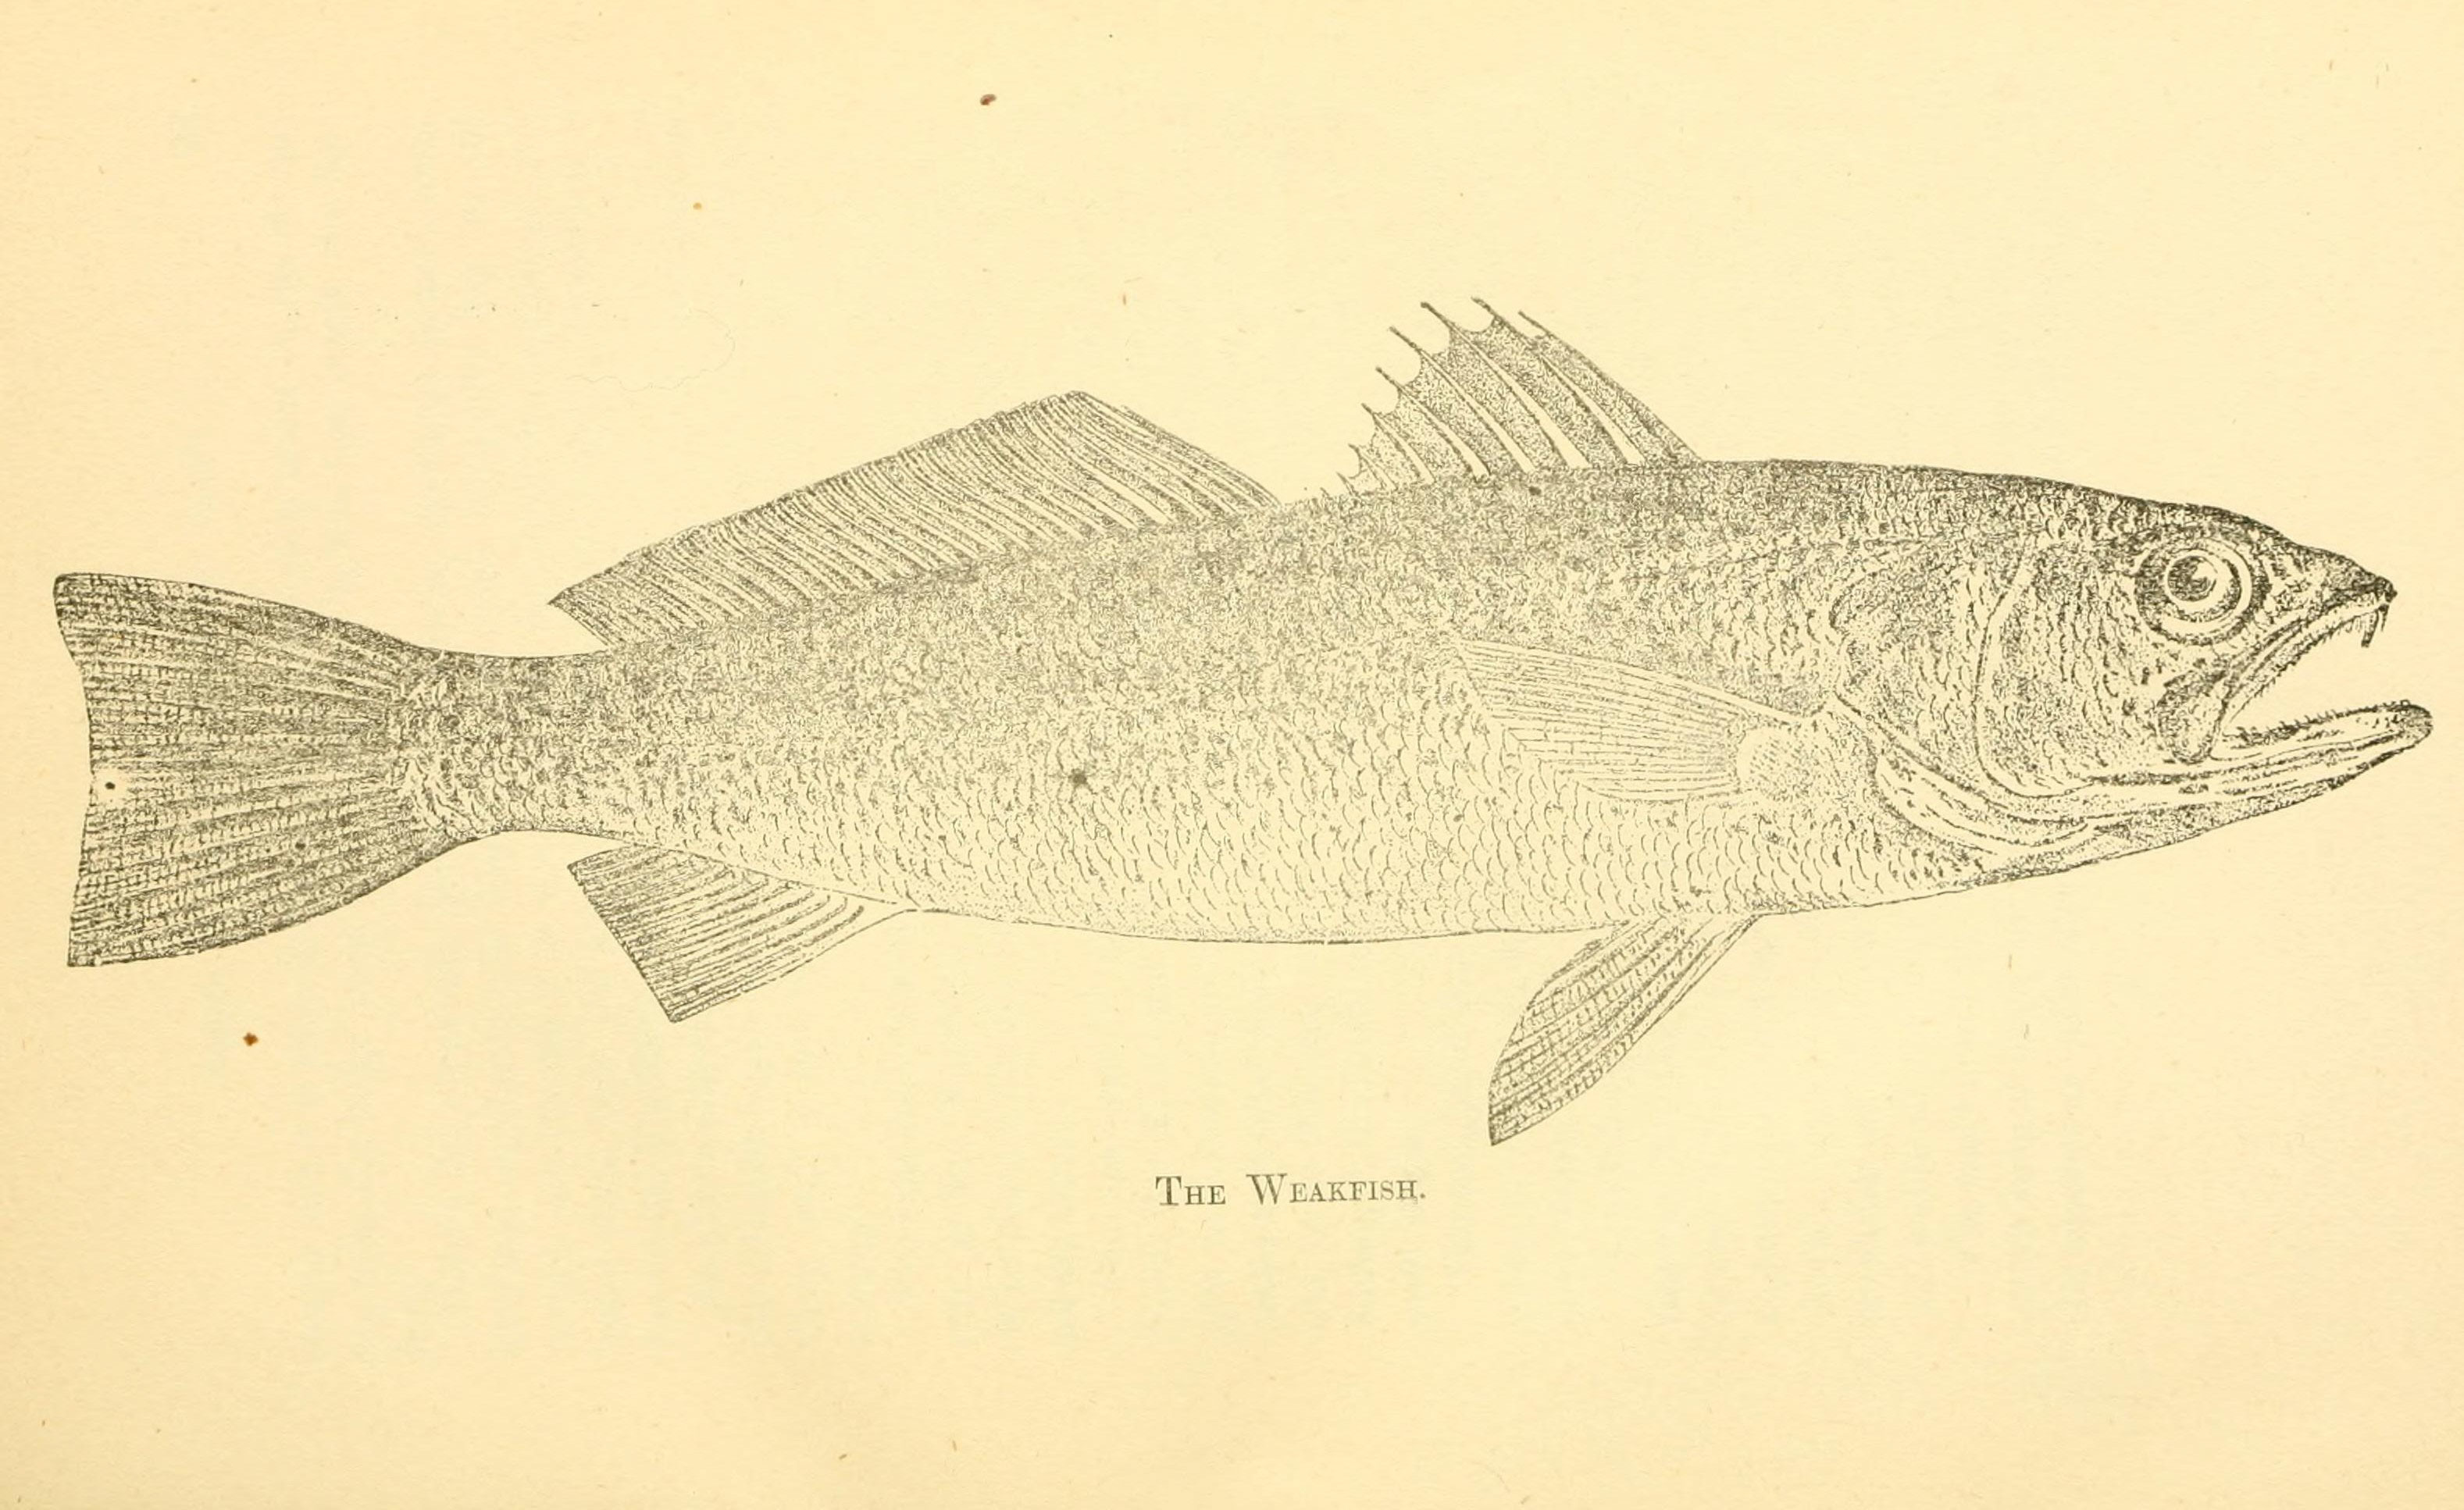 Image of Gray weakfish